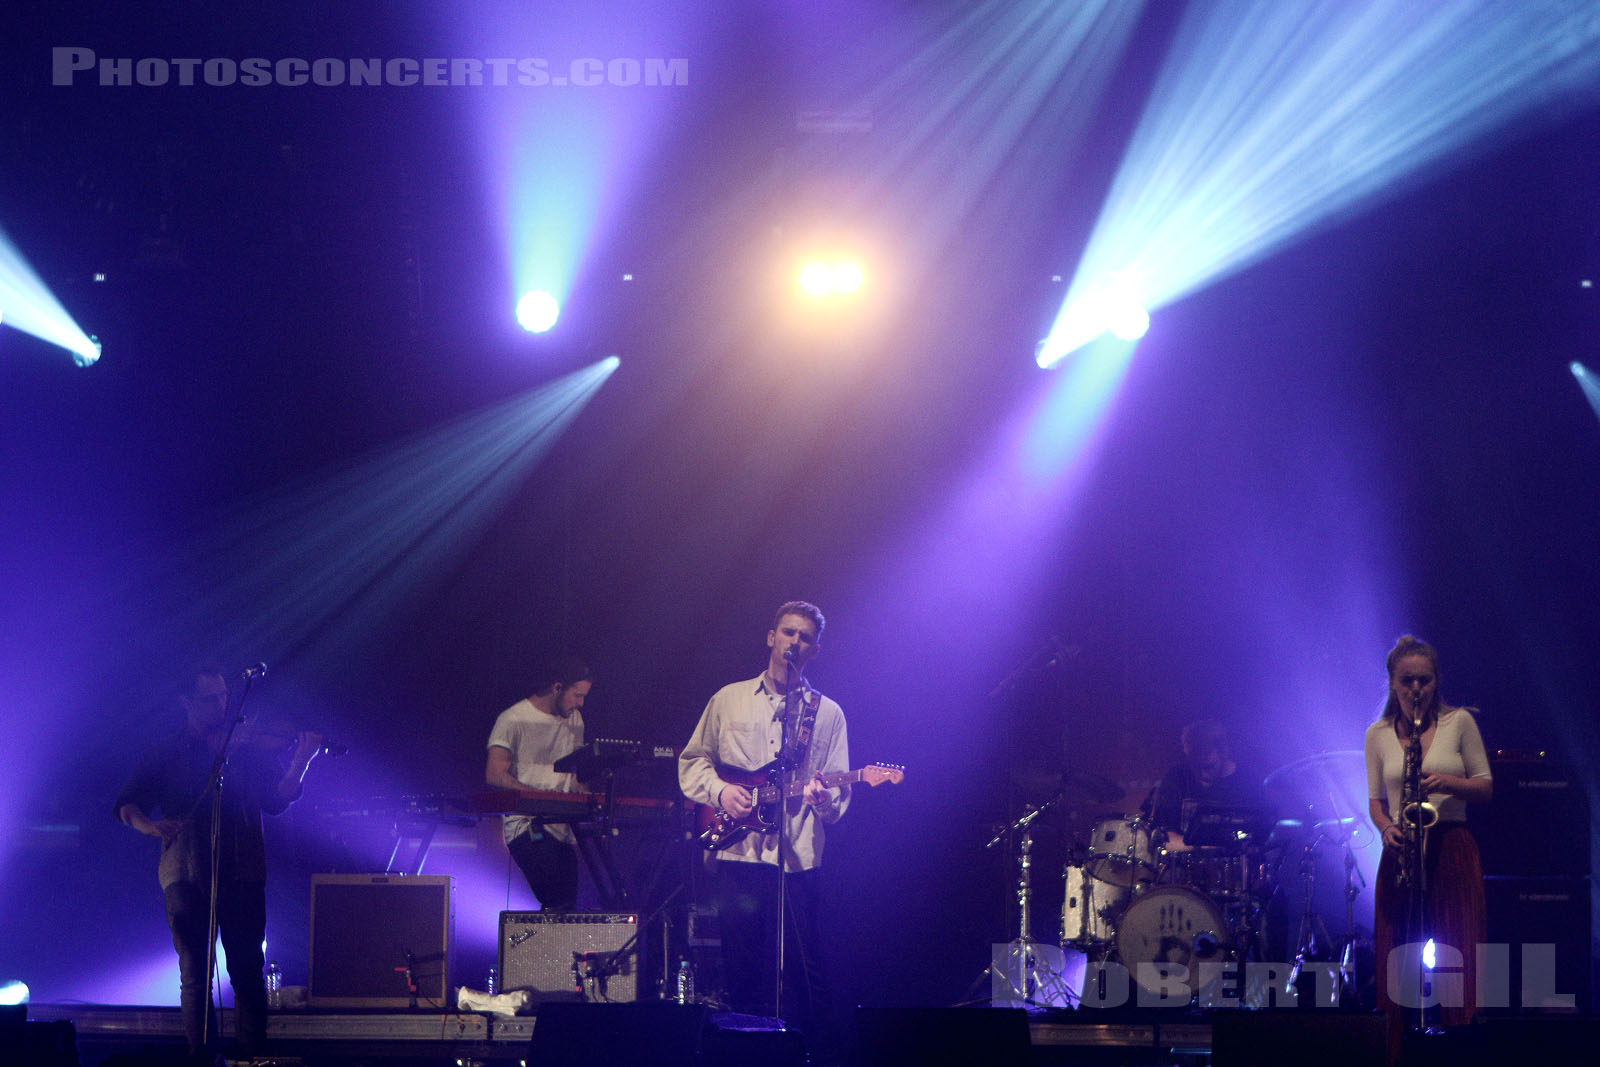 TOM MISCH - 2017-11-04 - PARIS - Grande Halle de La Villette